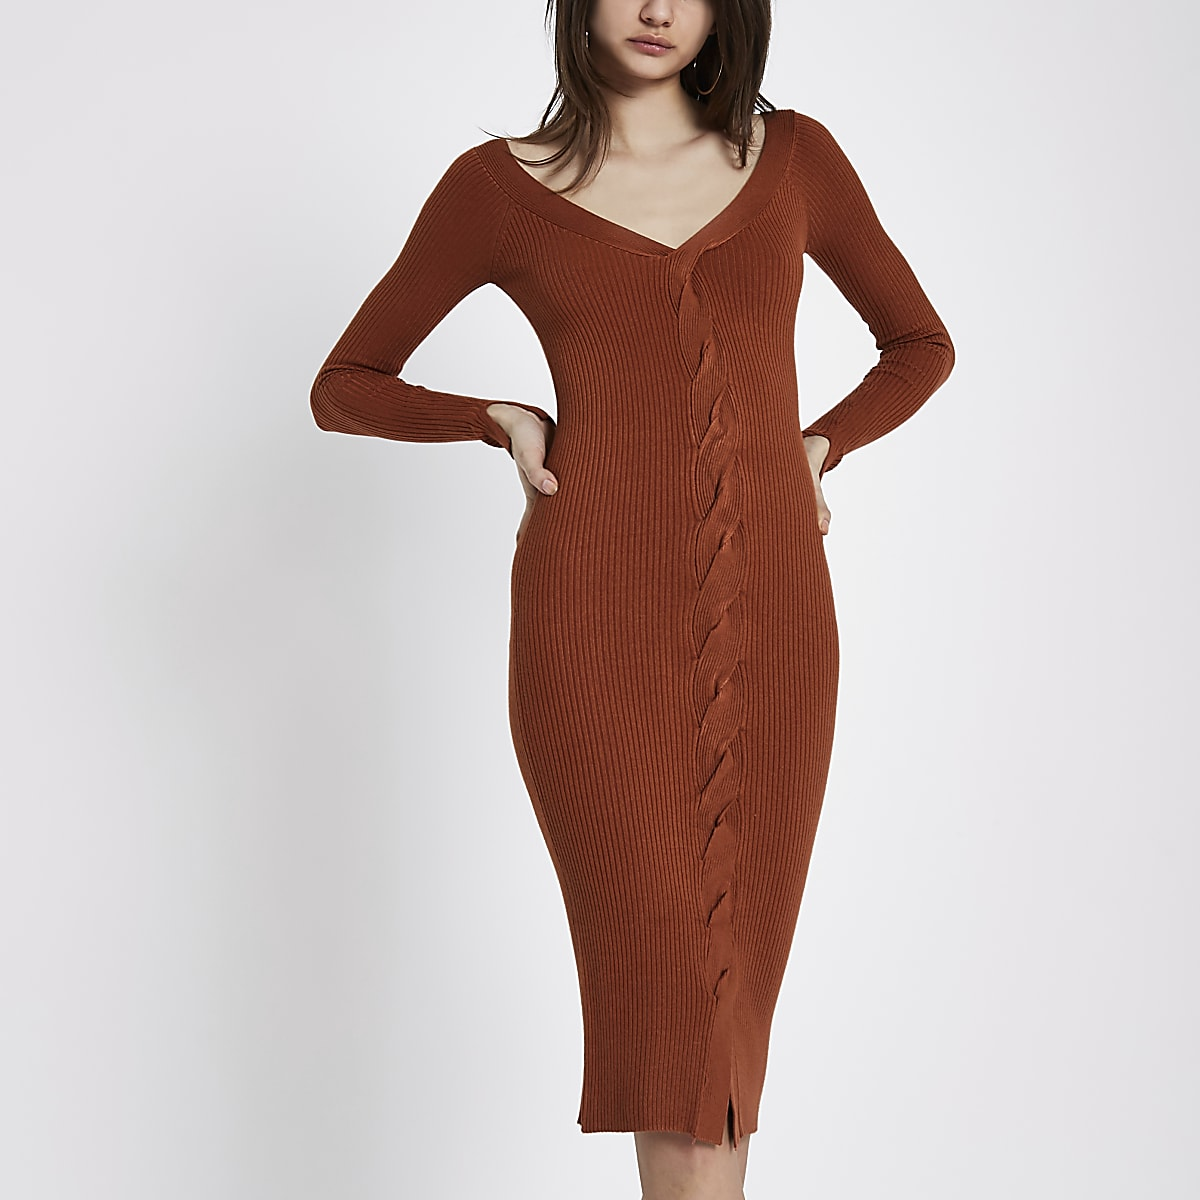 Dark orange cable knit cut out dress